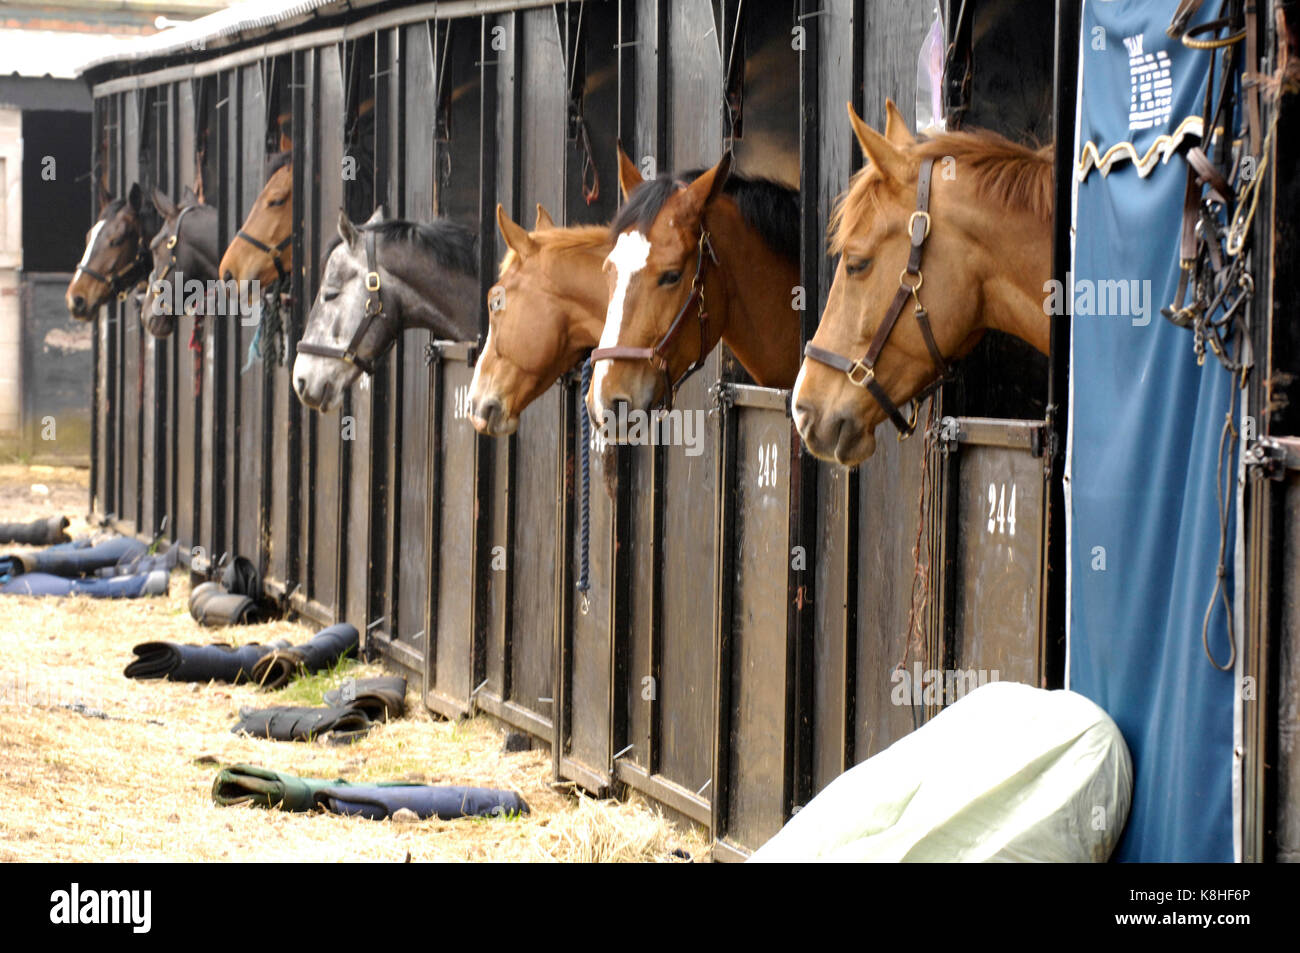 Stables at David grooms yard in Chepstow wales with a row of horses with their heads sticking out or looking out - Stock Image